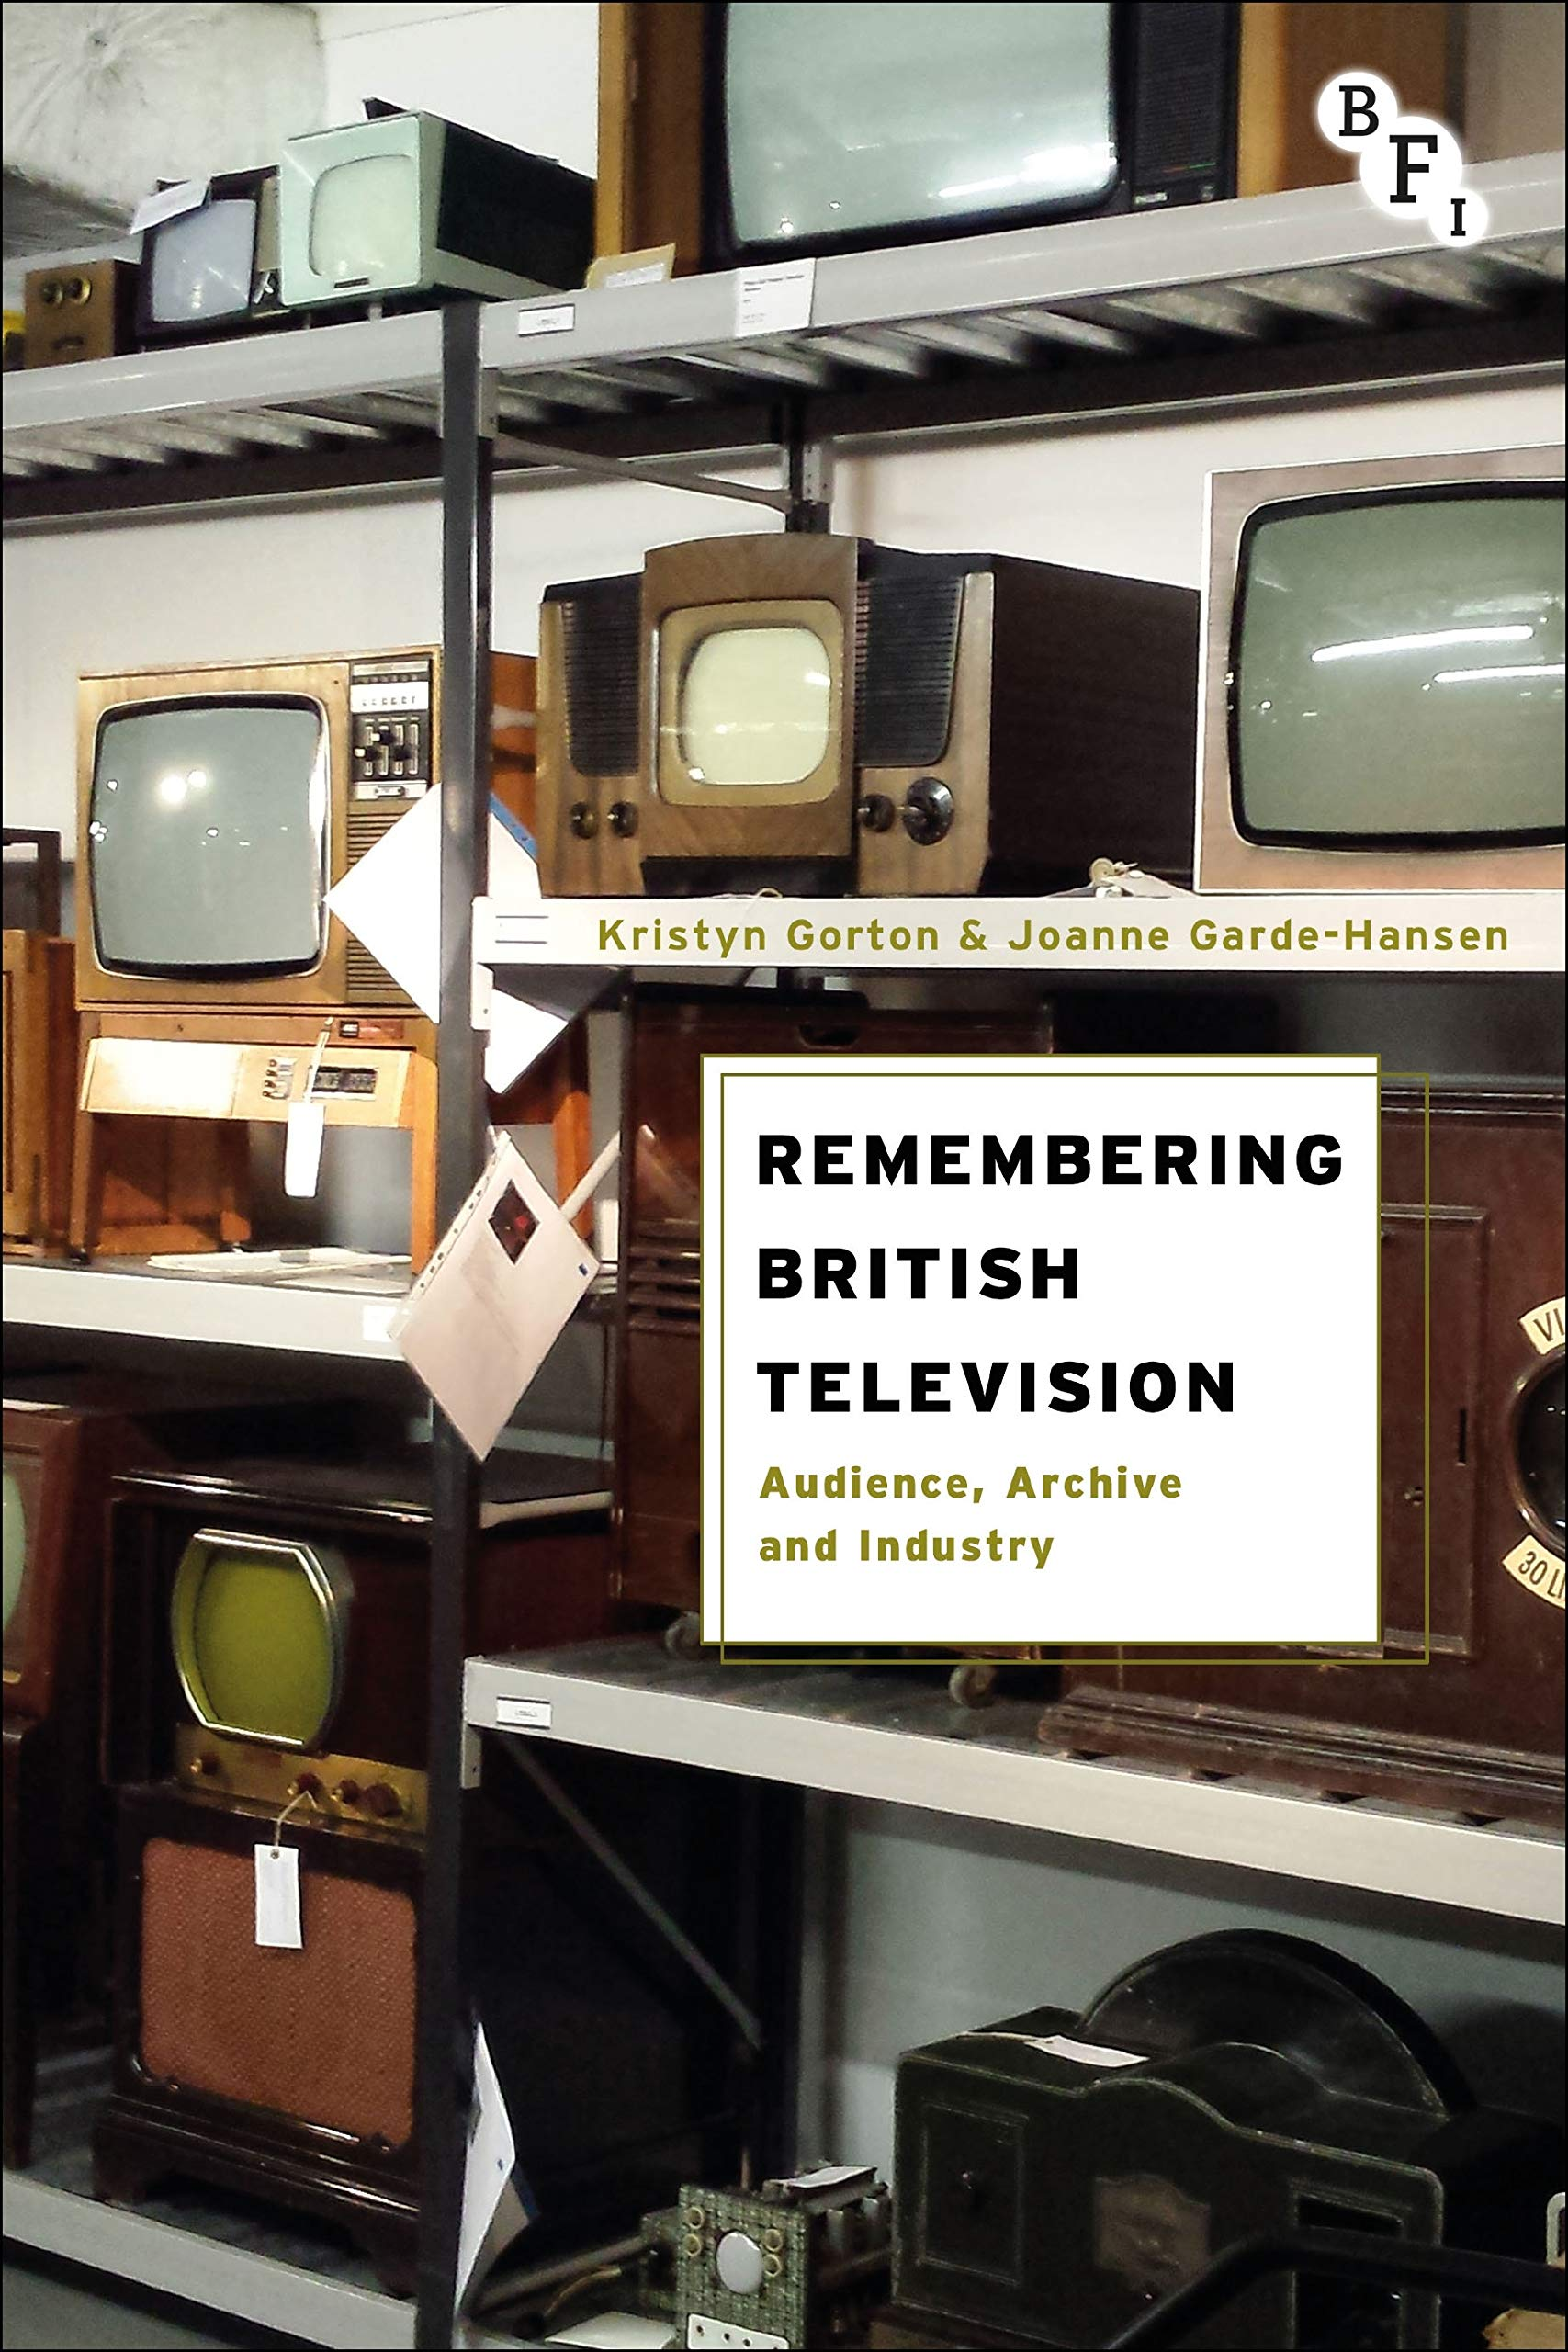 Remembering British Television: Audience, Archive and Industry: Amazon.co.uk:  Gorton, Kristyn, Garde-Hansen, Joanne: 9781844576609: Books